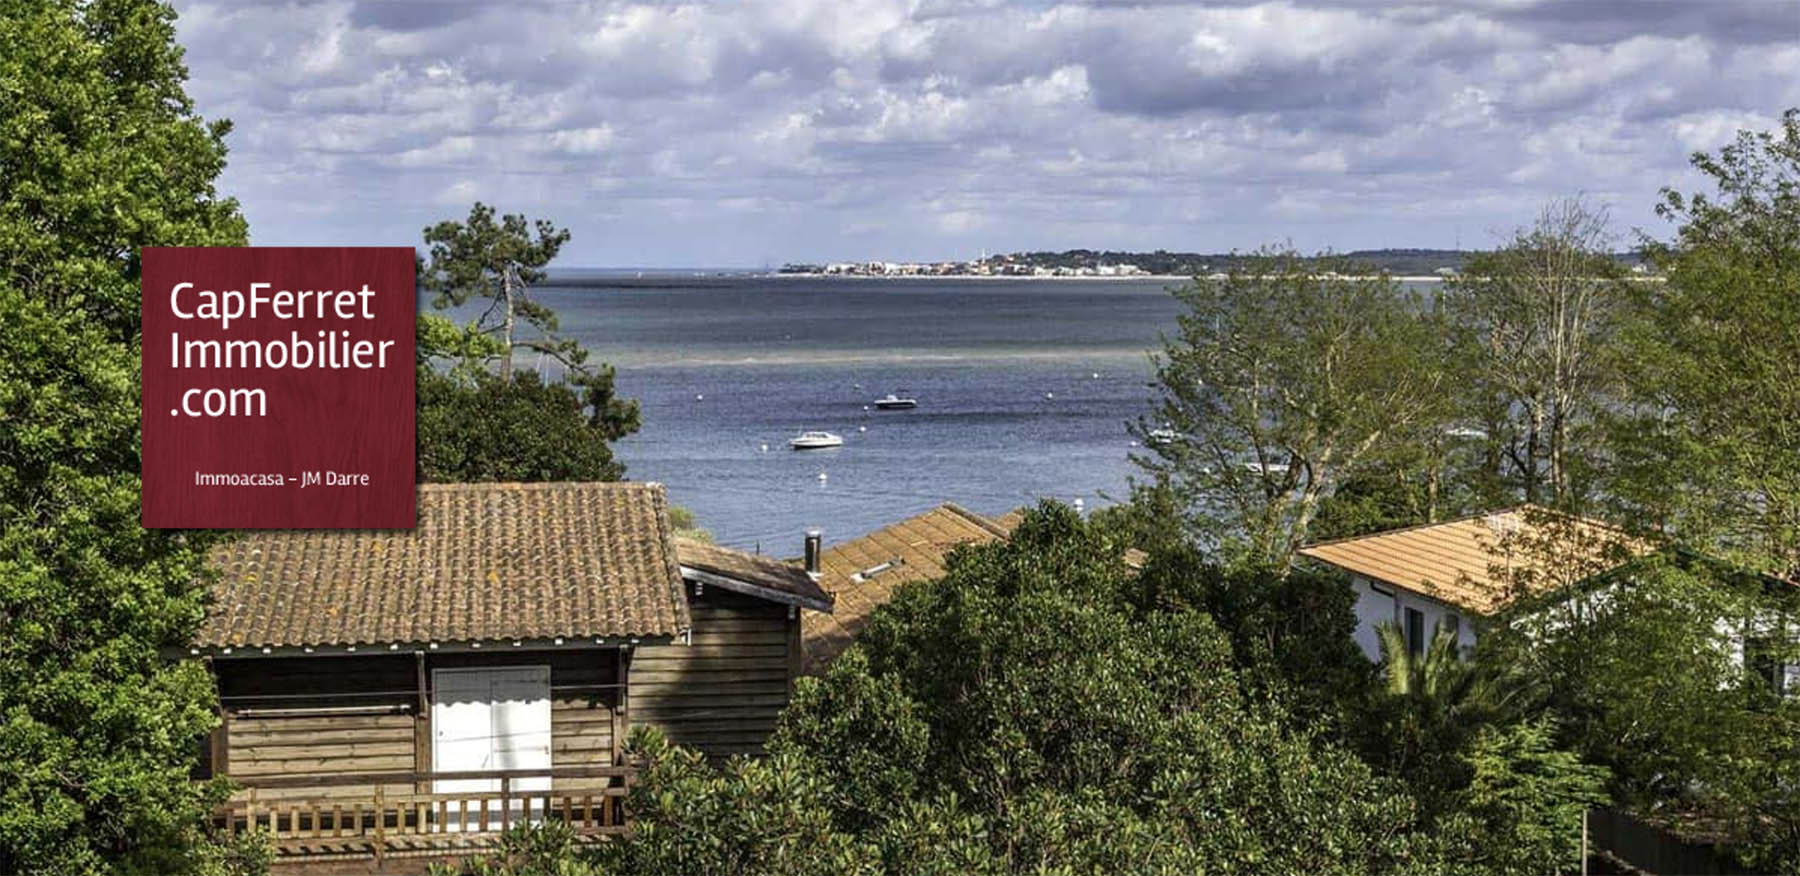 Agence immobili re au cap ferret for Tout les agence immobiliere